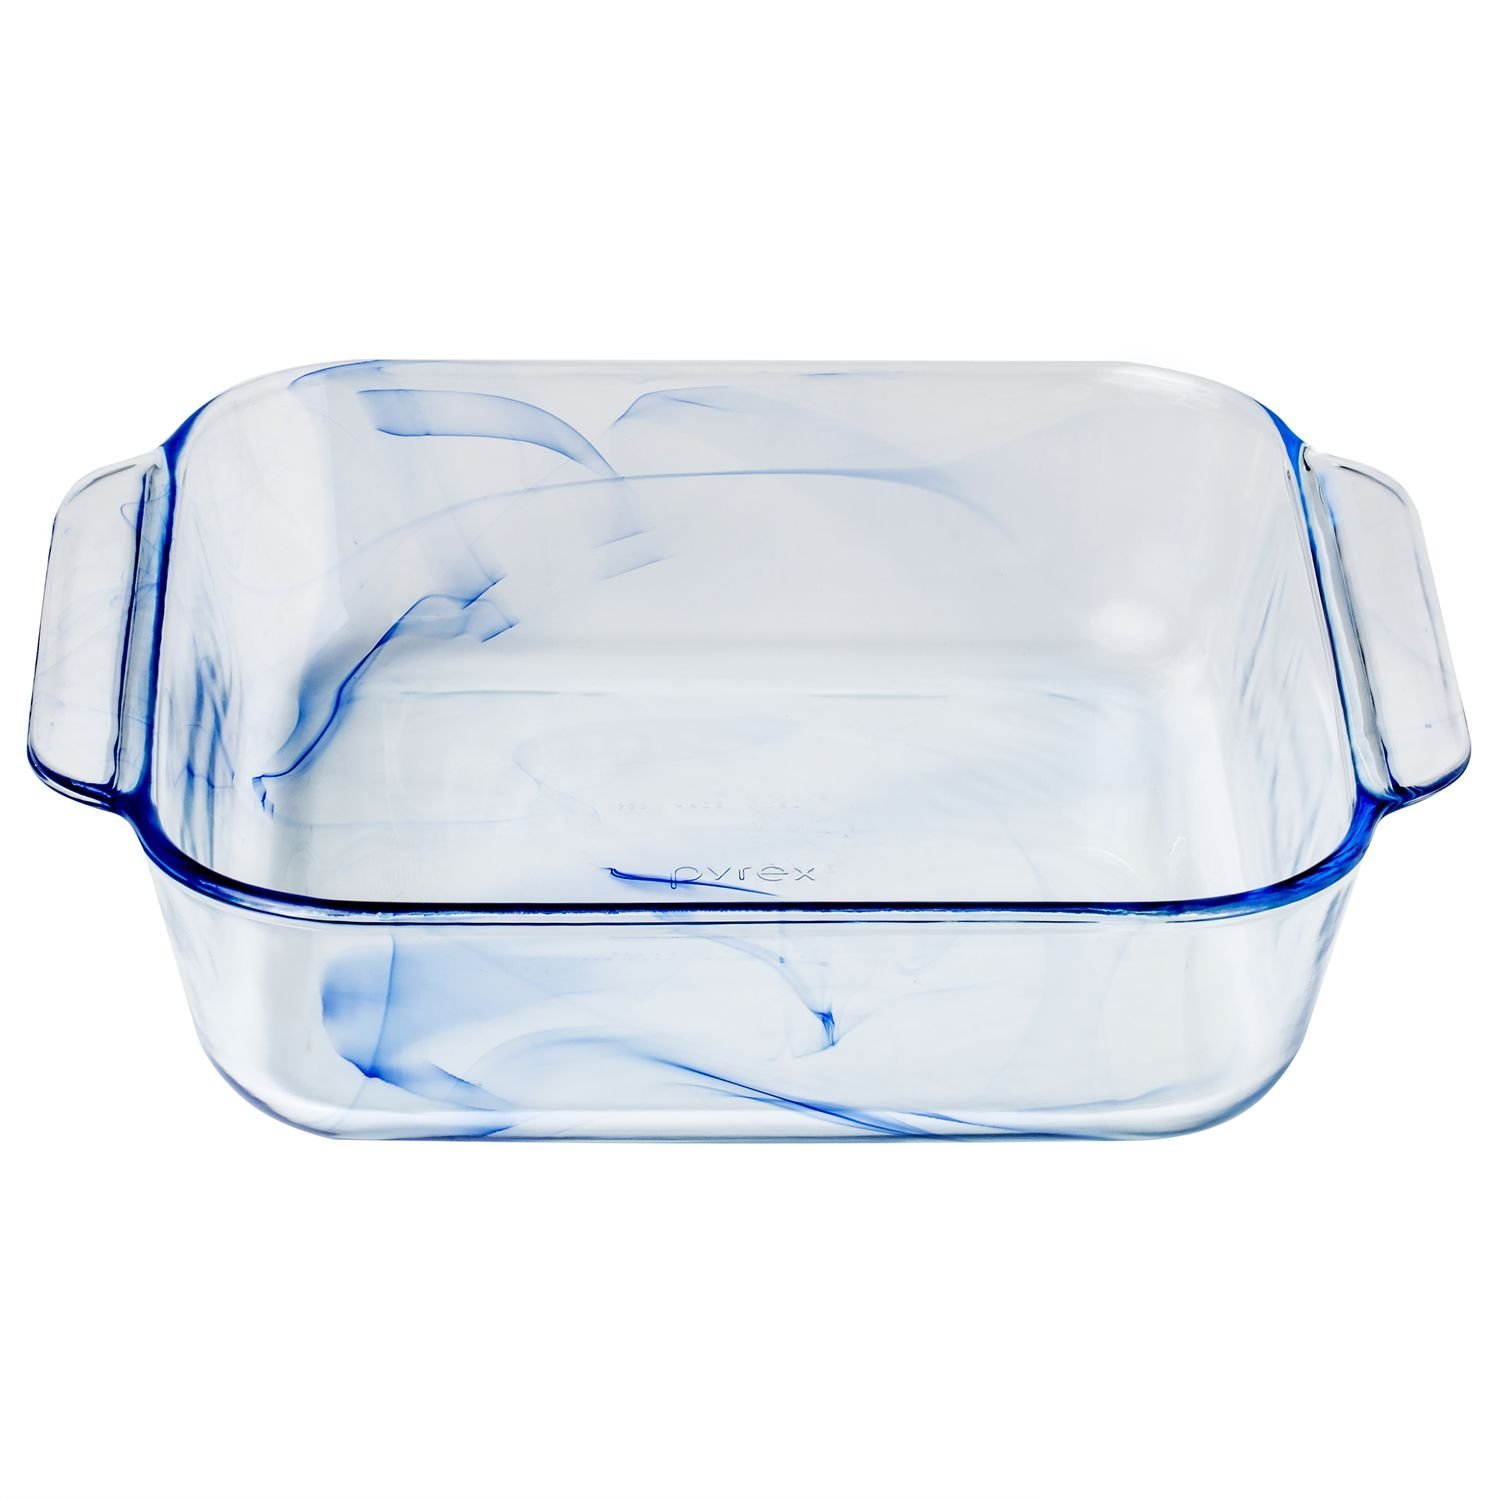 Pyrex, Pan Square Glass Blue, 1 Count